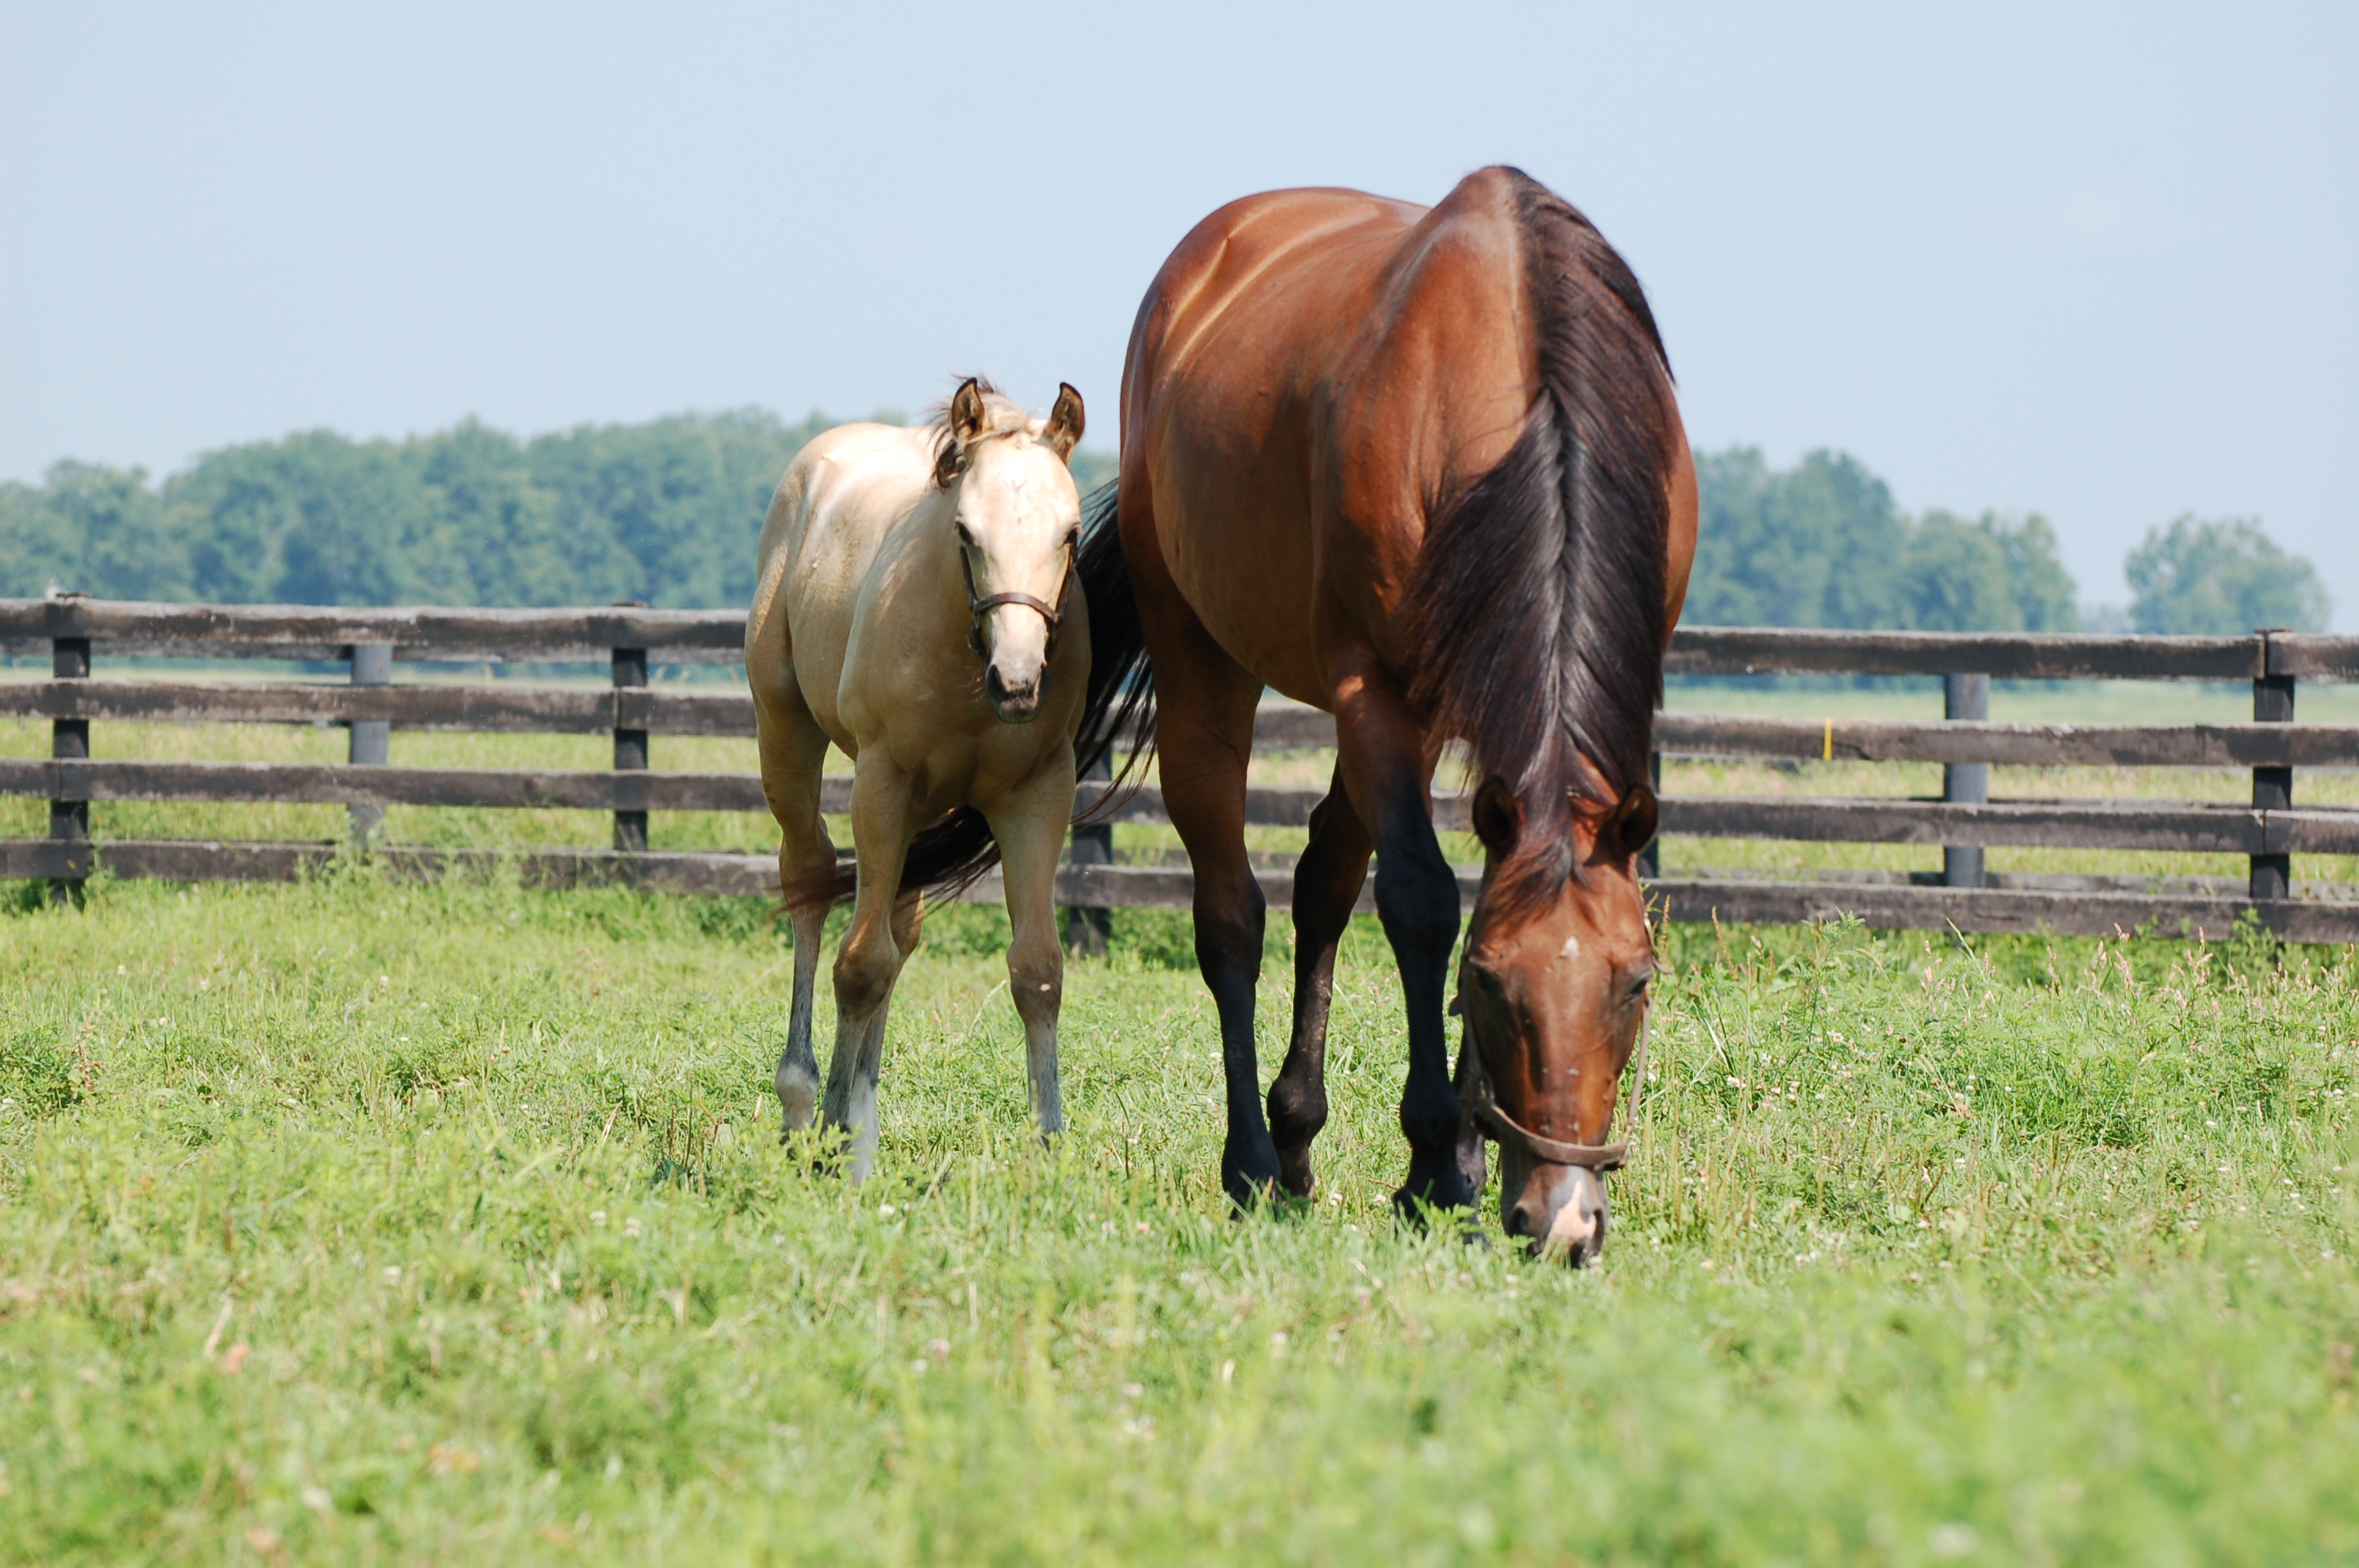 UK Equine Farm and Facilities Expo to be held Sept. 28